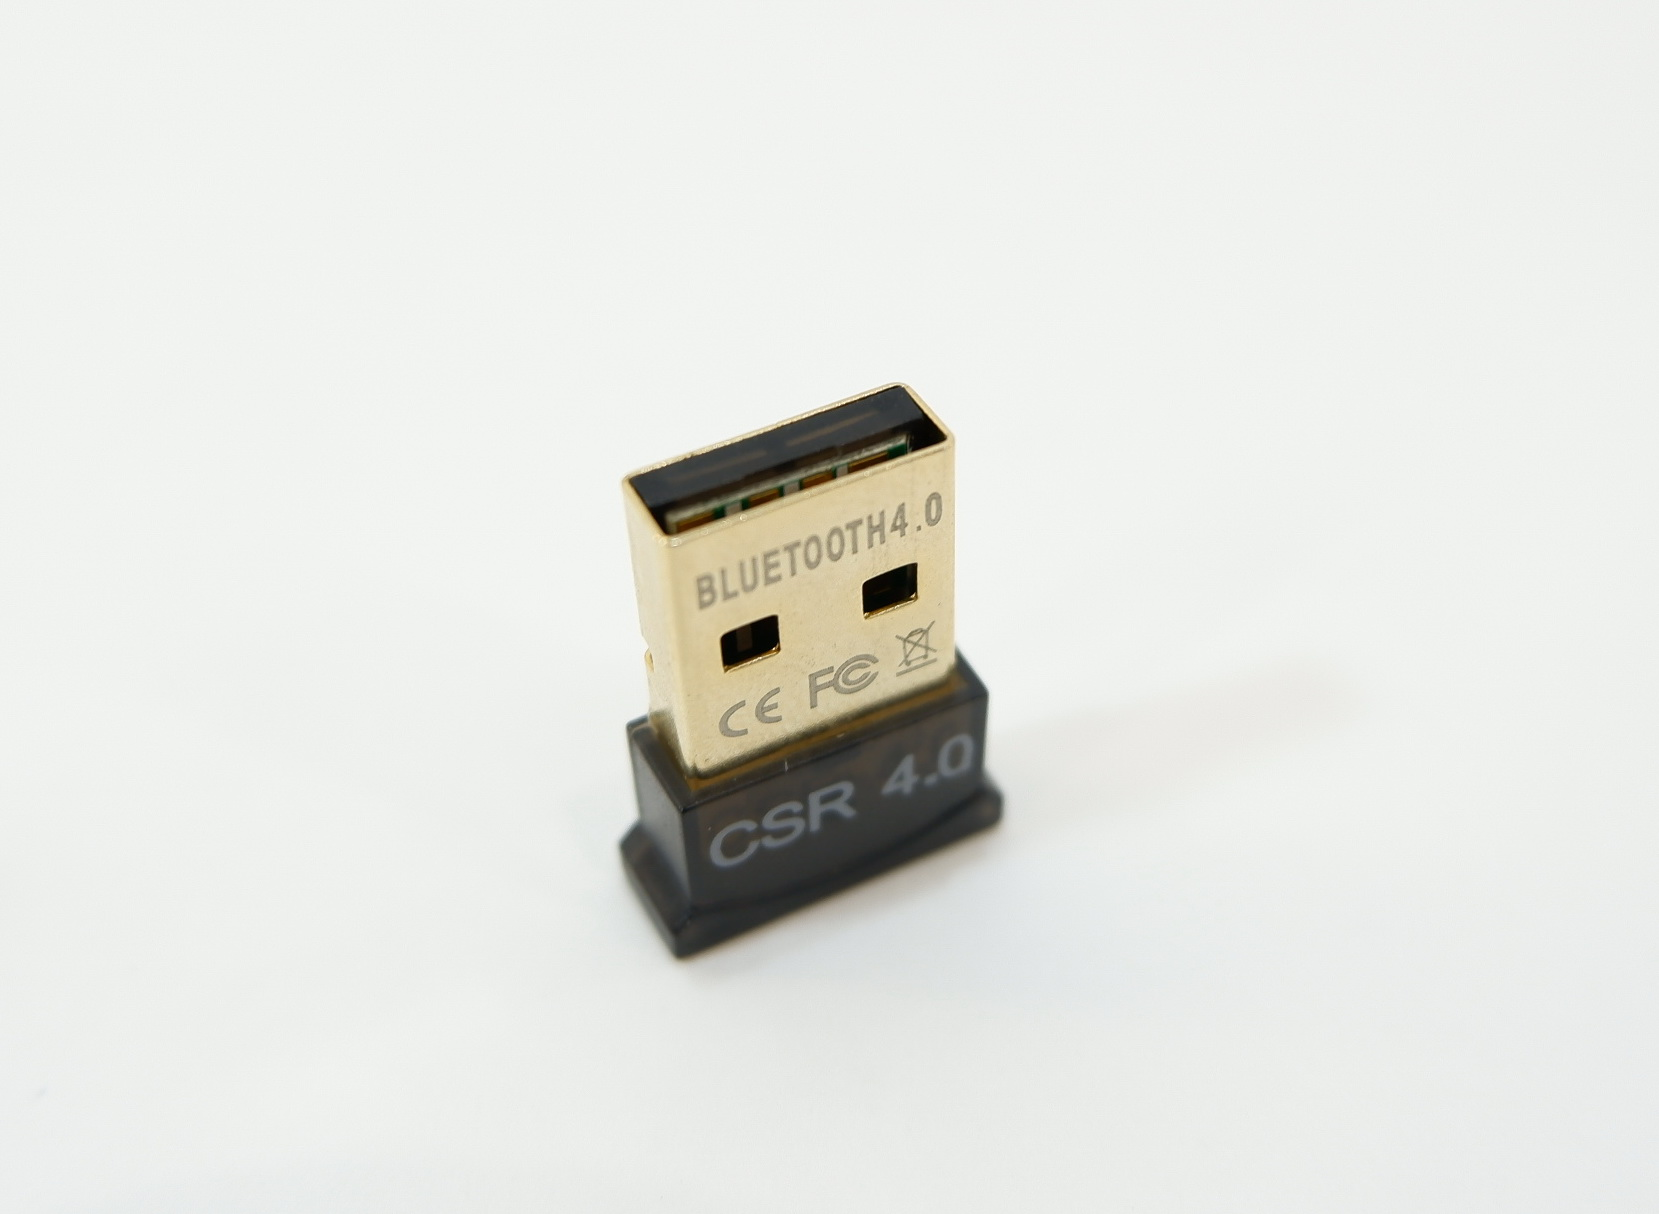 Адаптер USB — Bluetooth 4.0 Gembird, до 50 метров - Pic n 286745